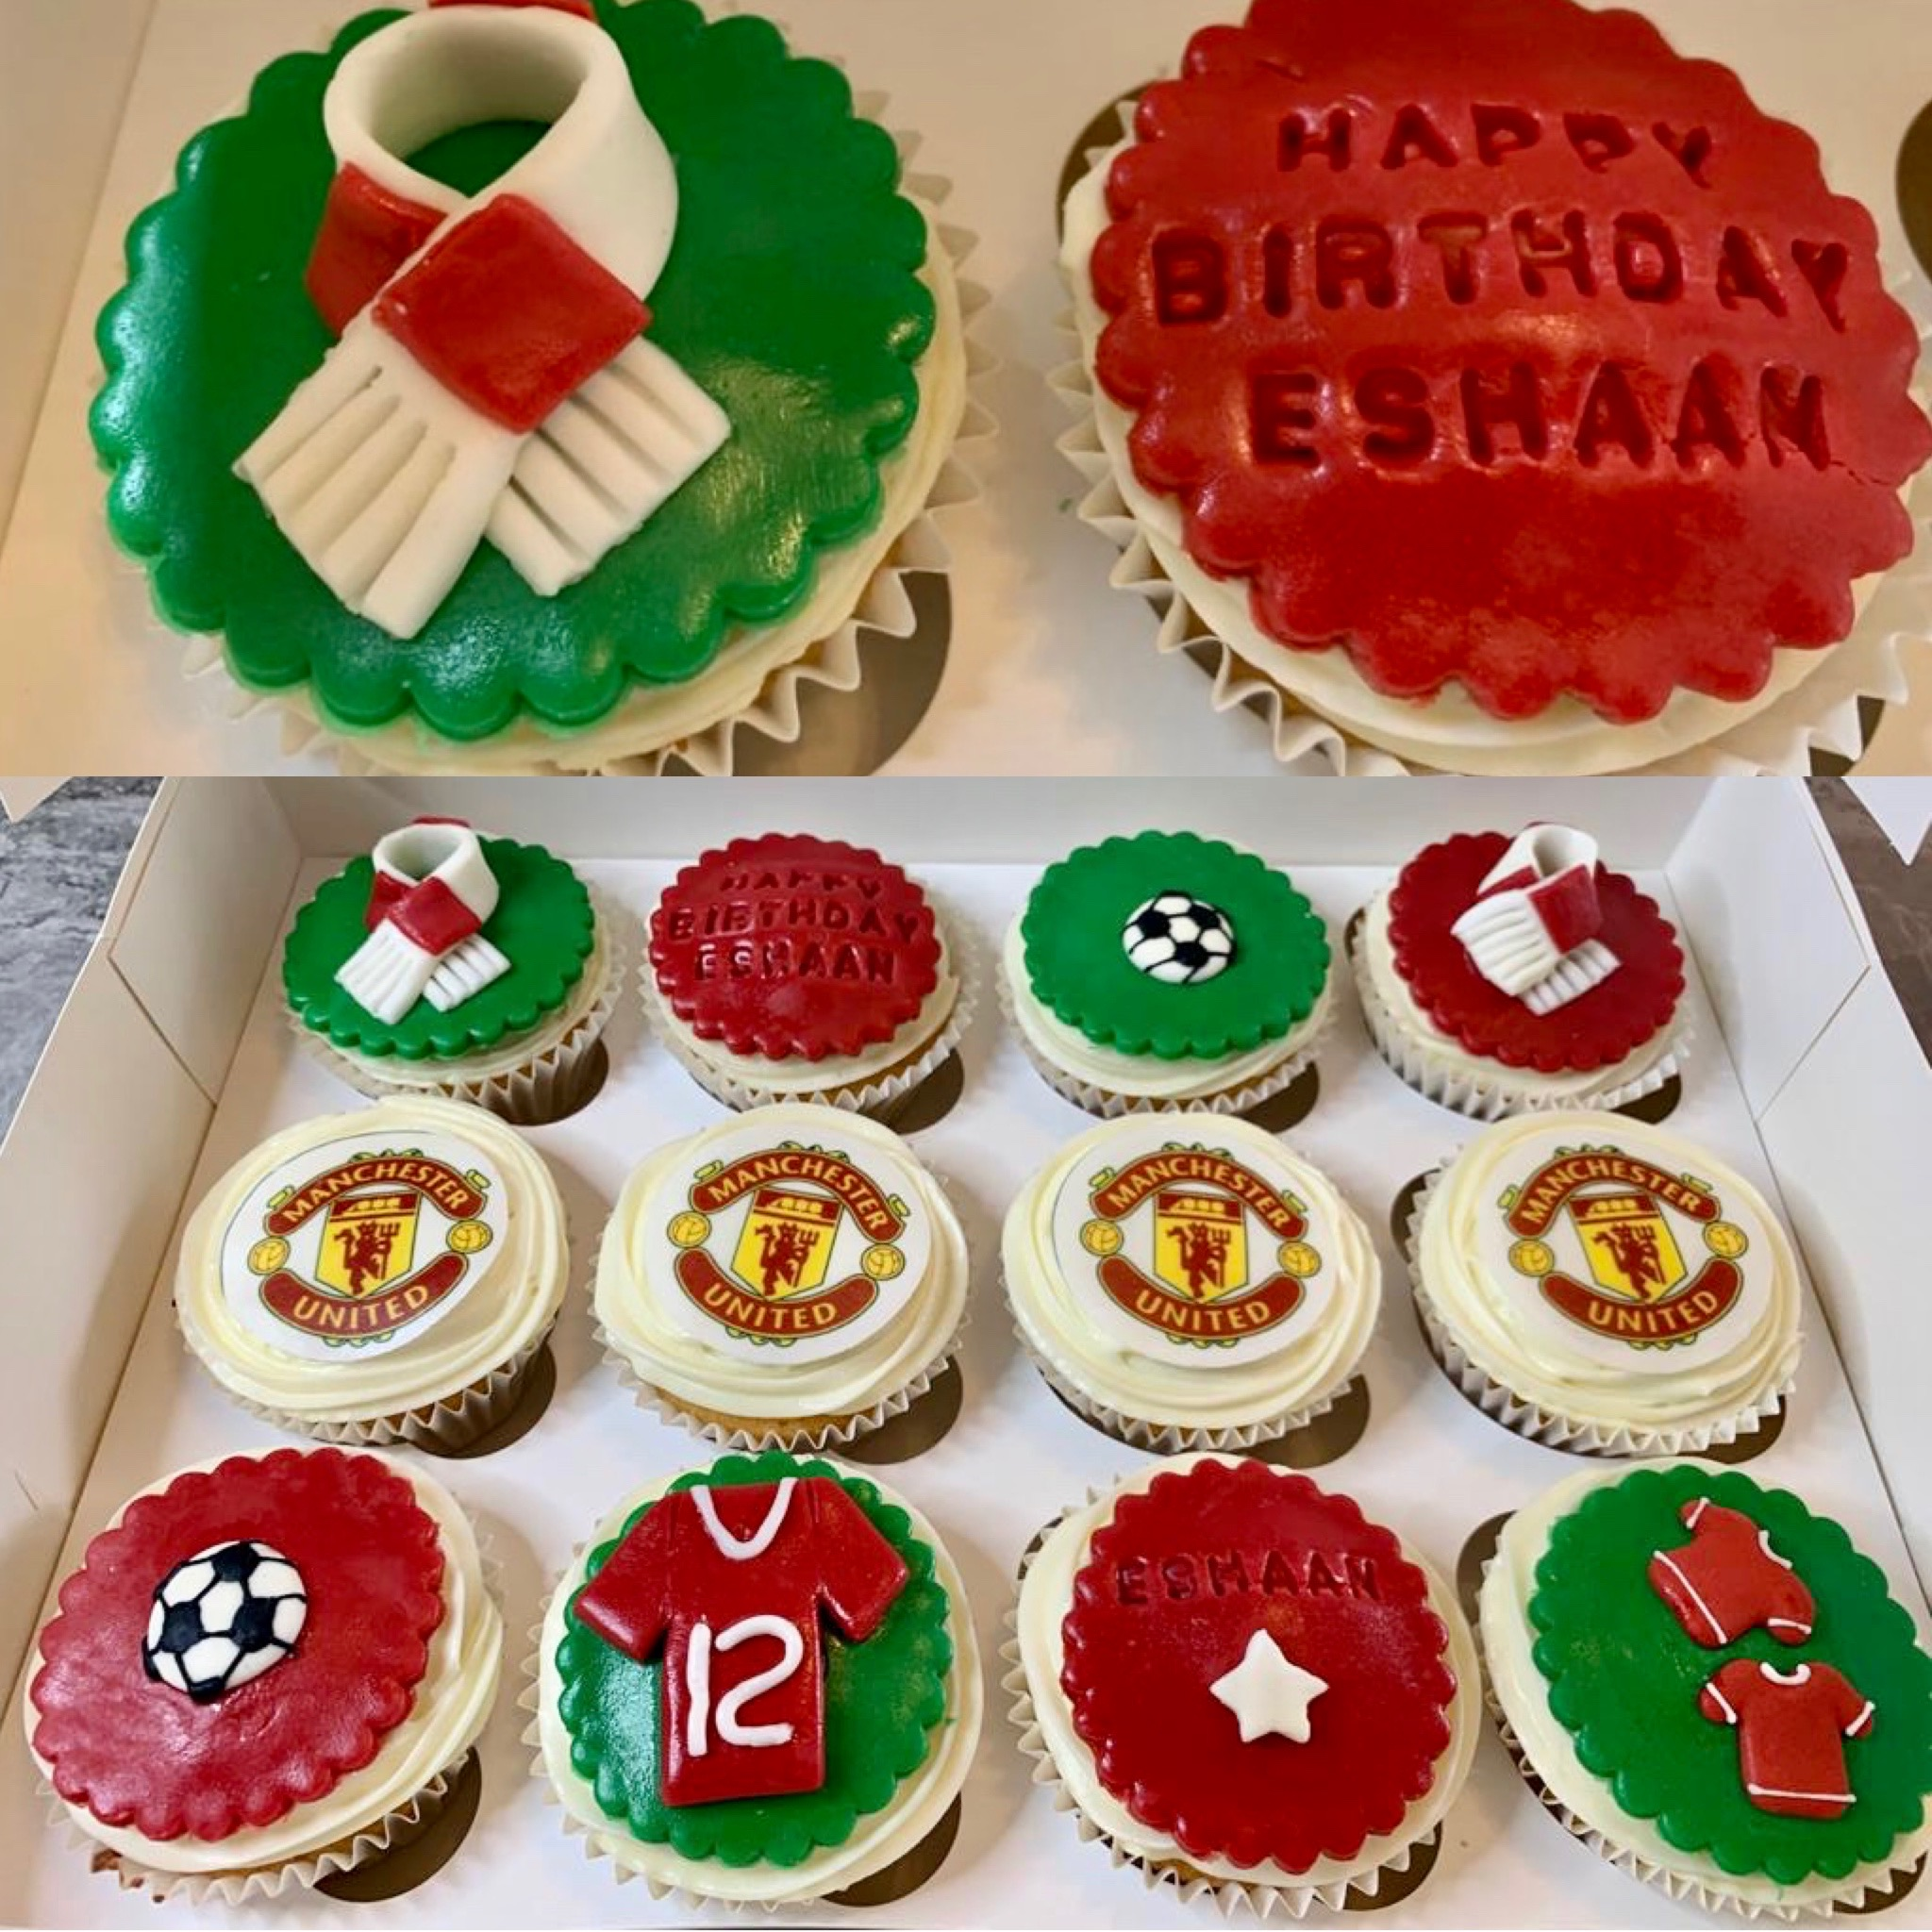 7.Football Manchester United Themed Cupcakes